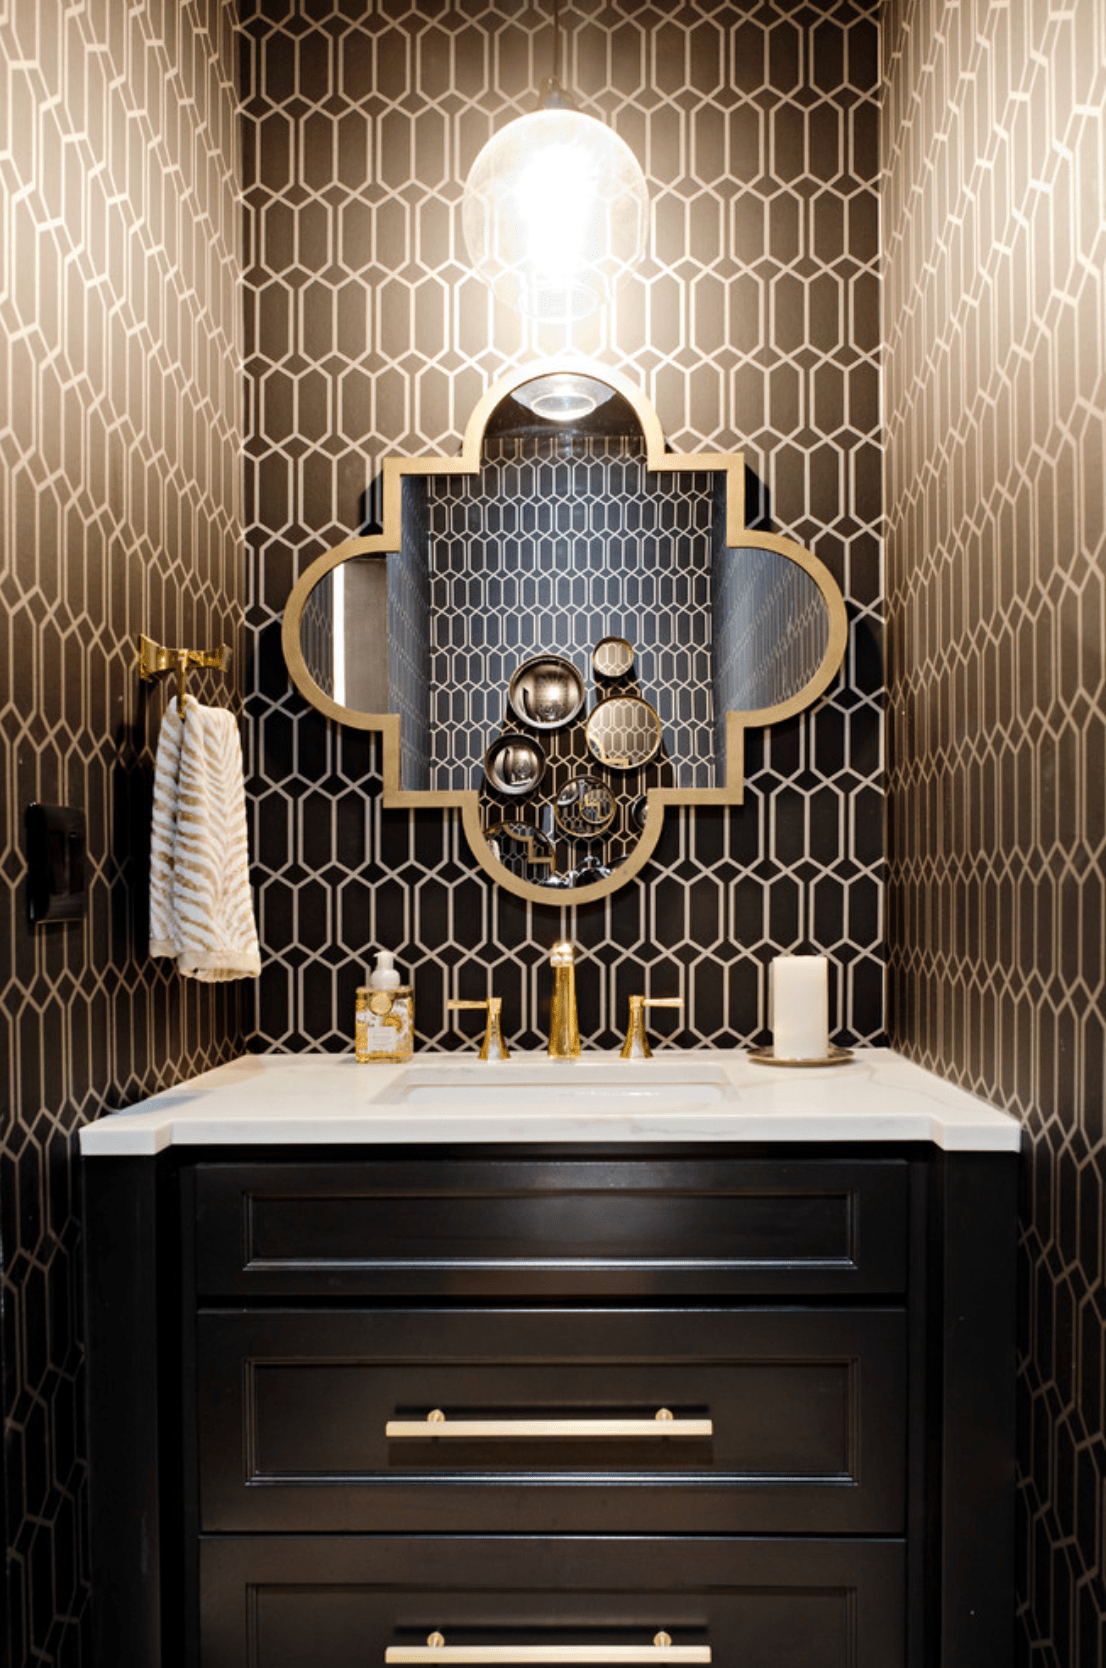 Cloakroom decorated in black and gold